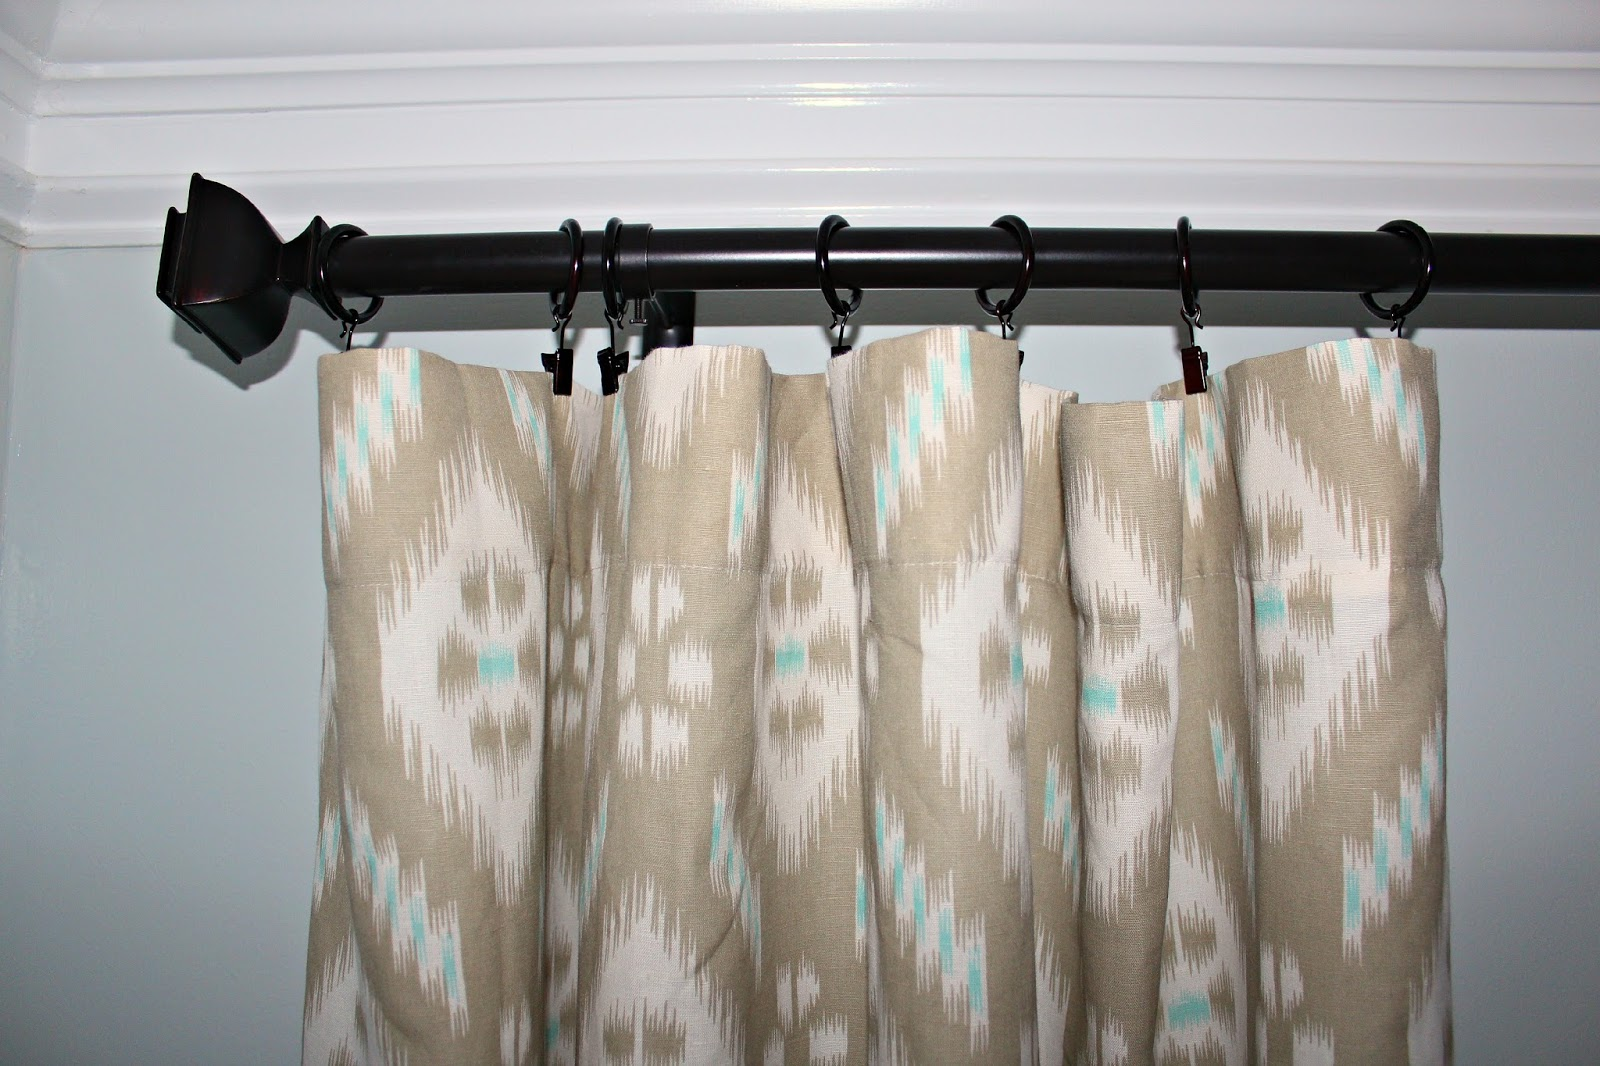 carolina on my mind dining room ikat curtains a big thanks to tal who graciously volunteered to hang the orb curtain rod for me